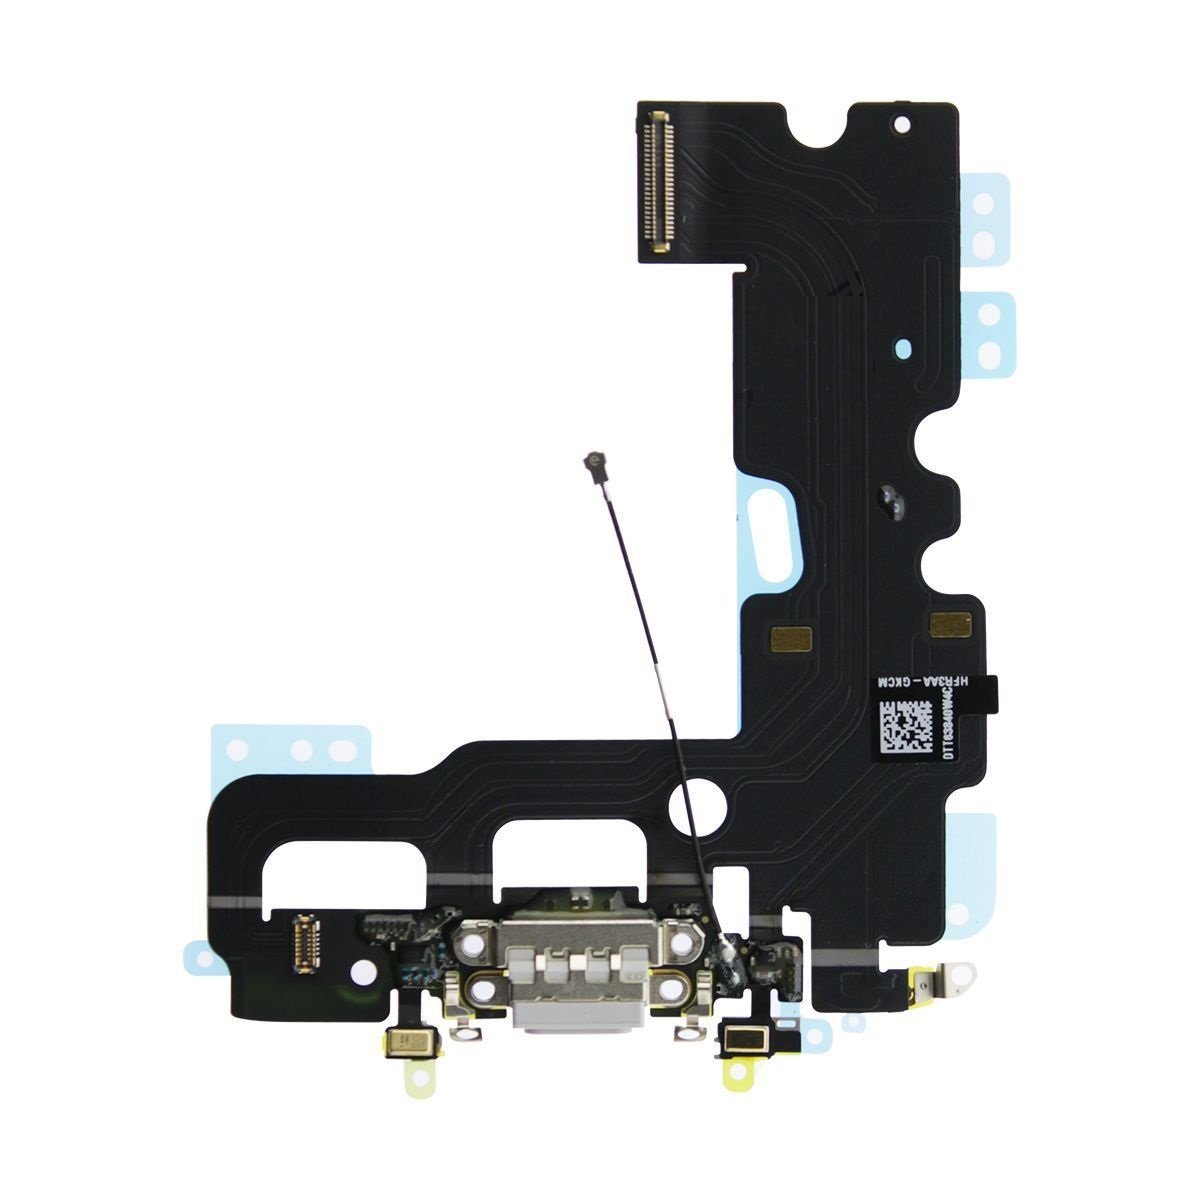 Puerto de Carga para Iphone 7 PLUS 5.5 white Dock Connector